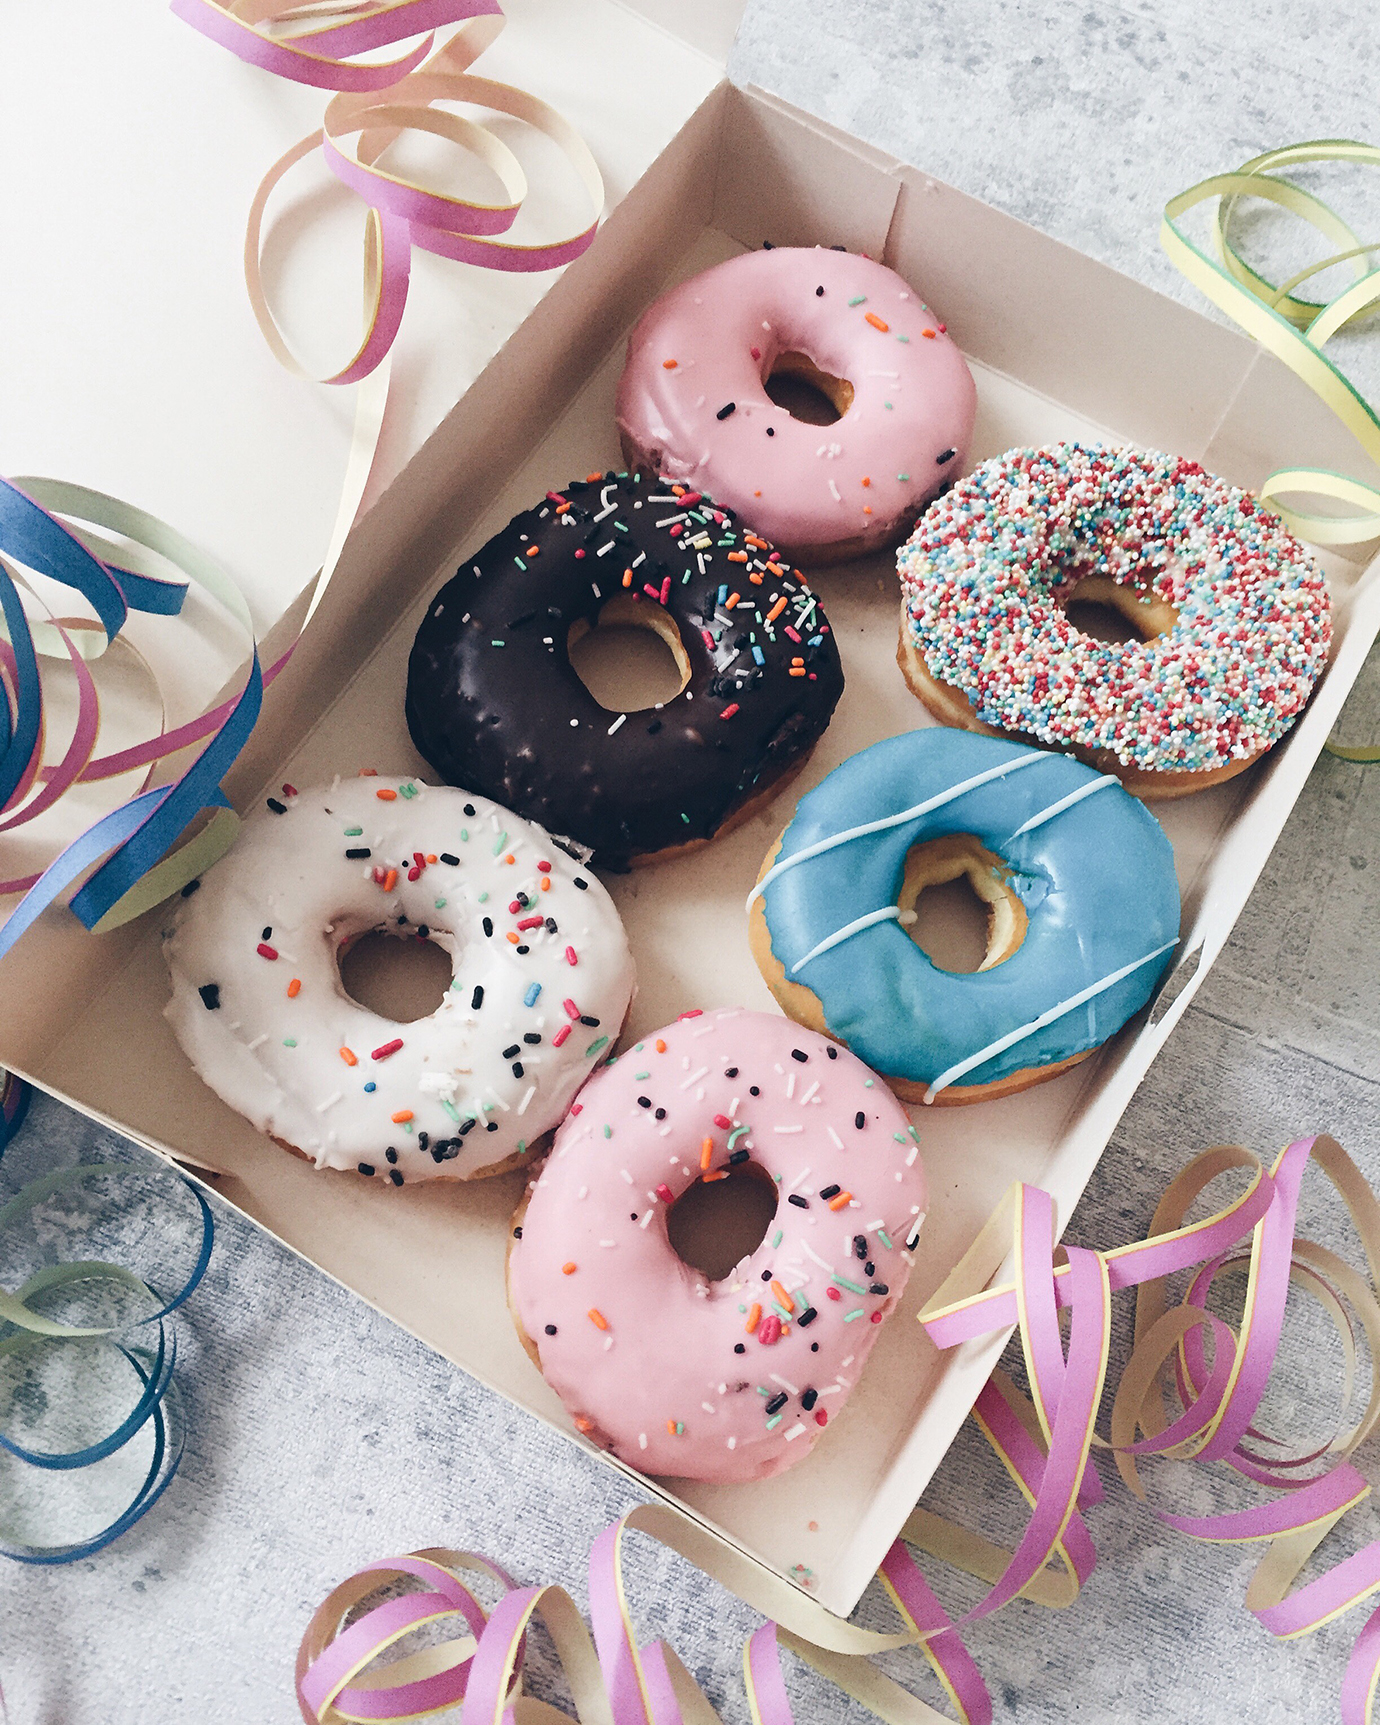 7things_48_donuts